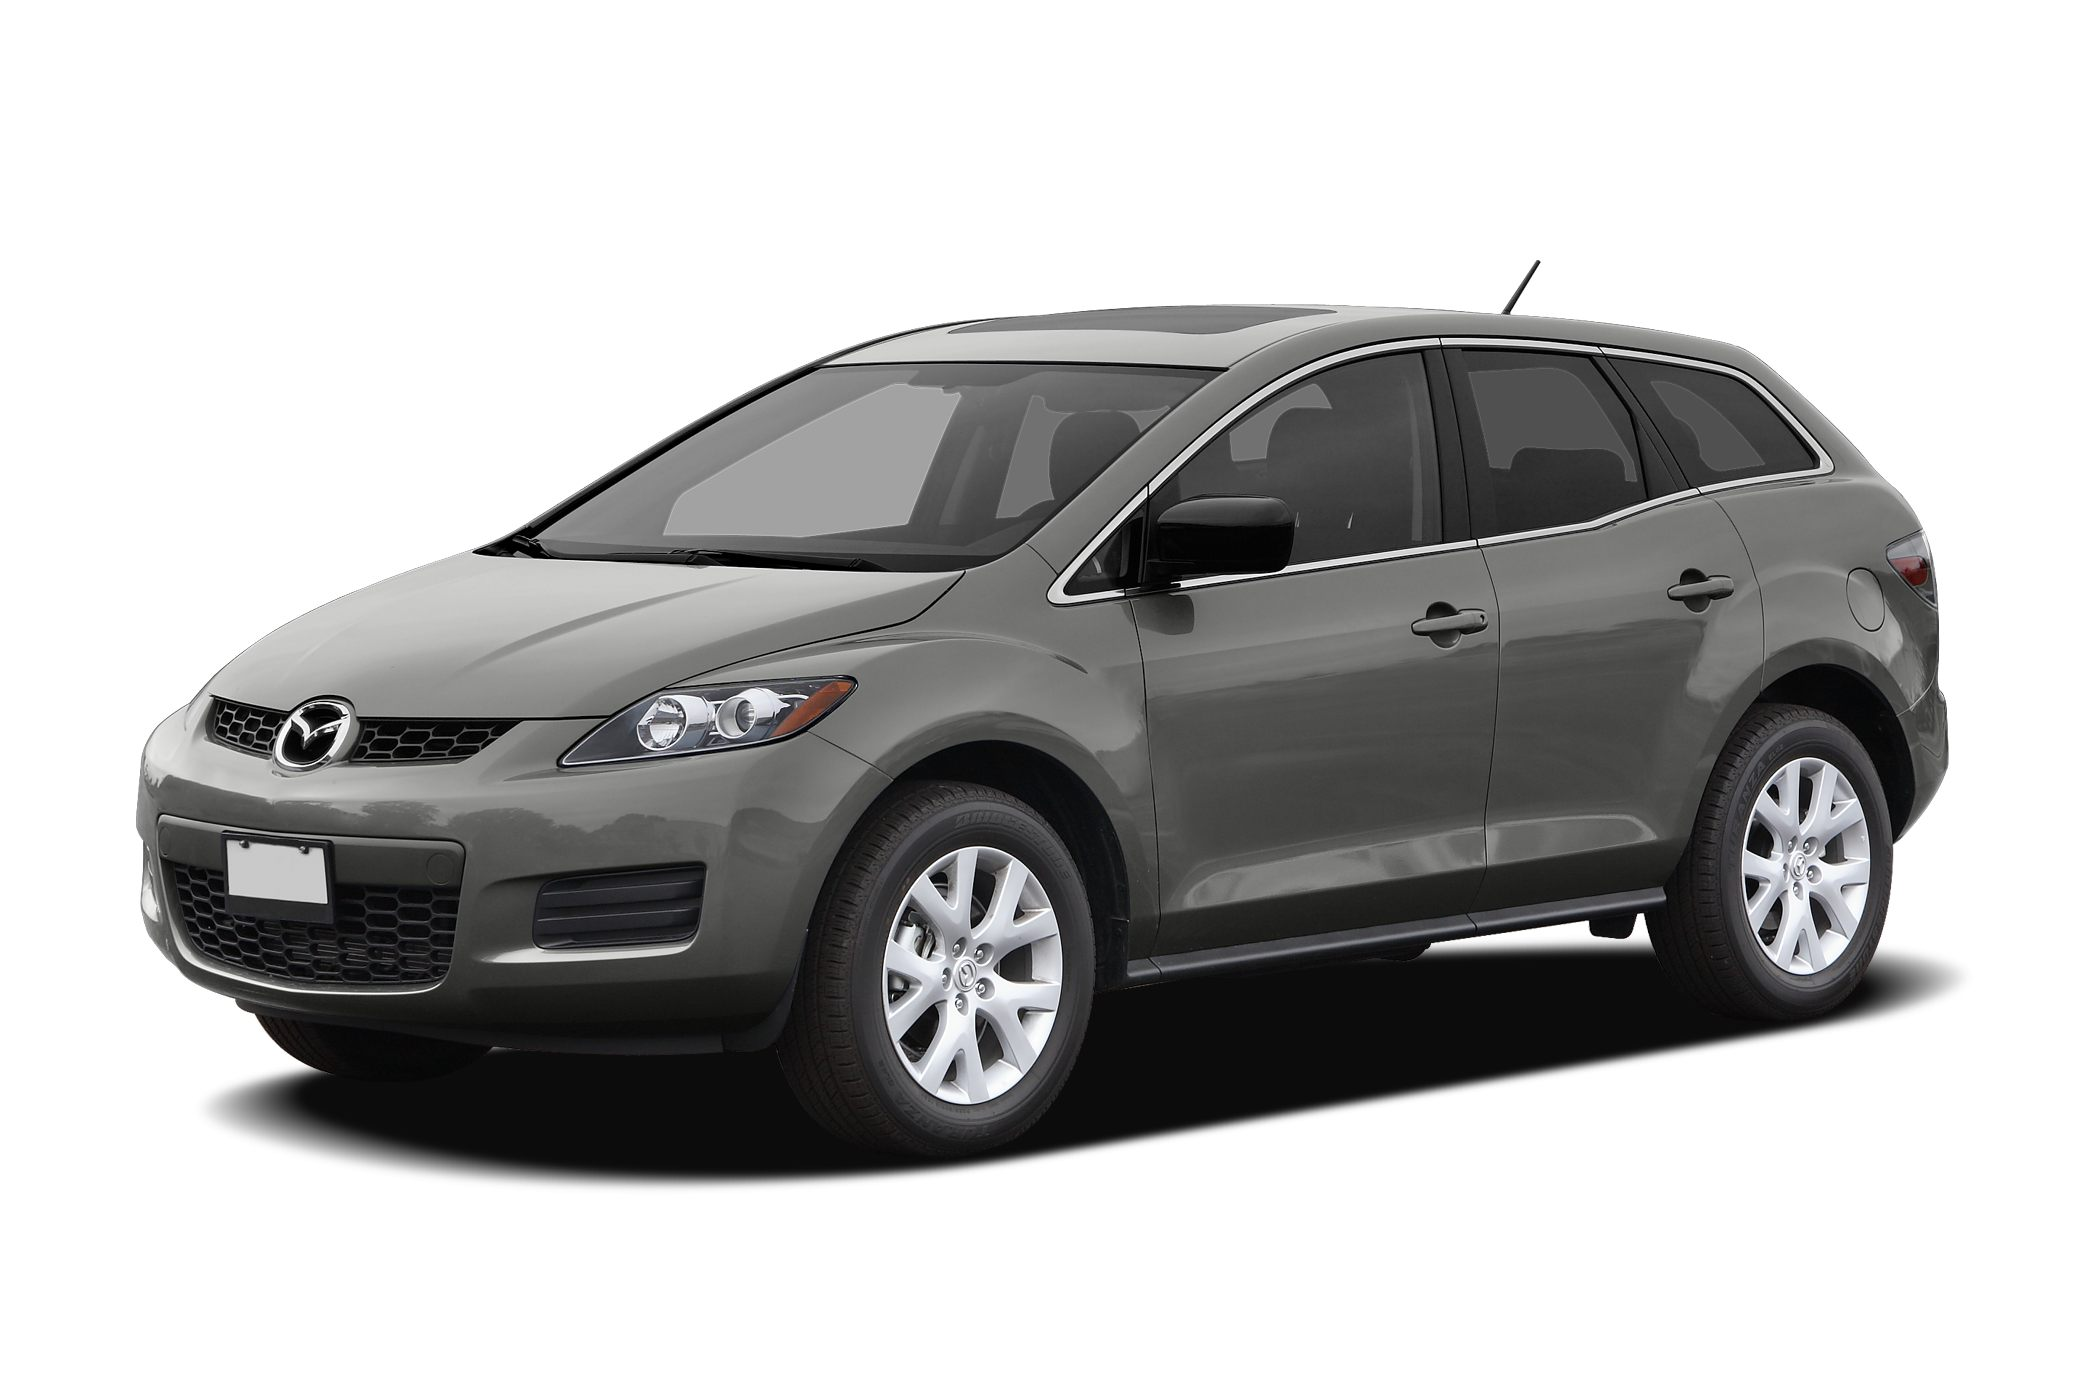 2008 Mazda CX-7 Sport SUV for sale in Johnstown for $7,990 with 64,493 miles.